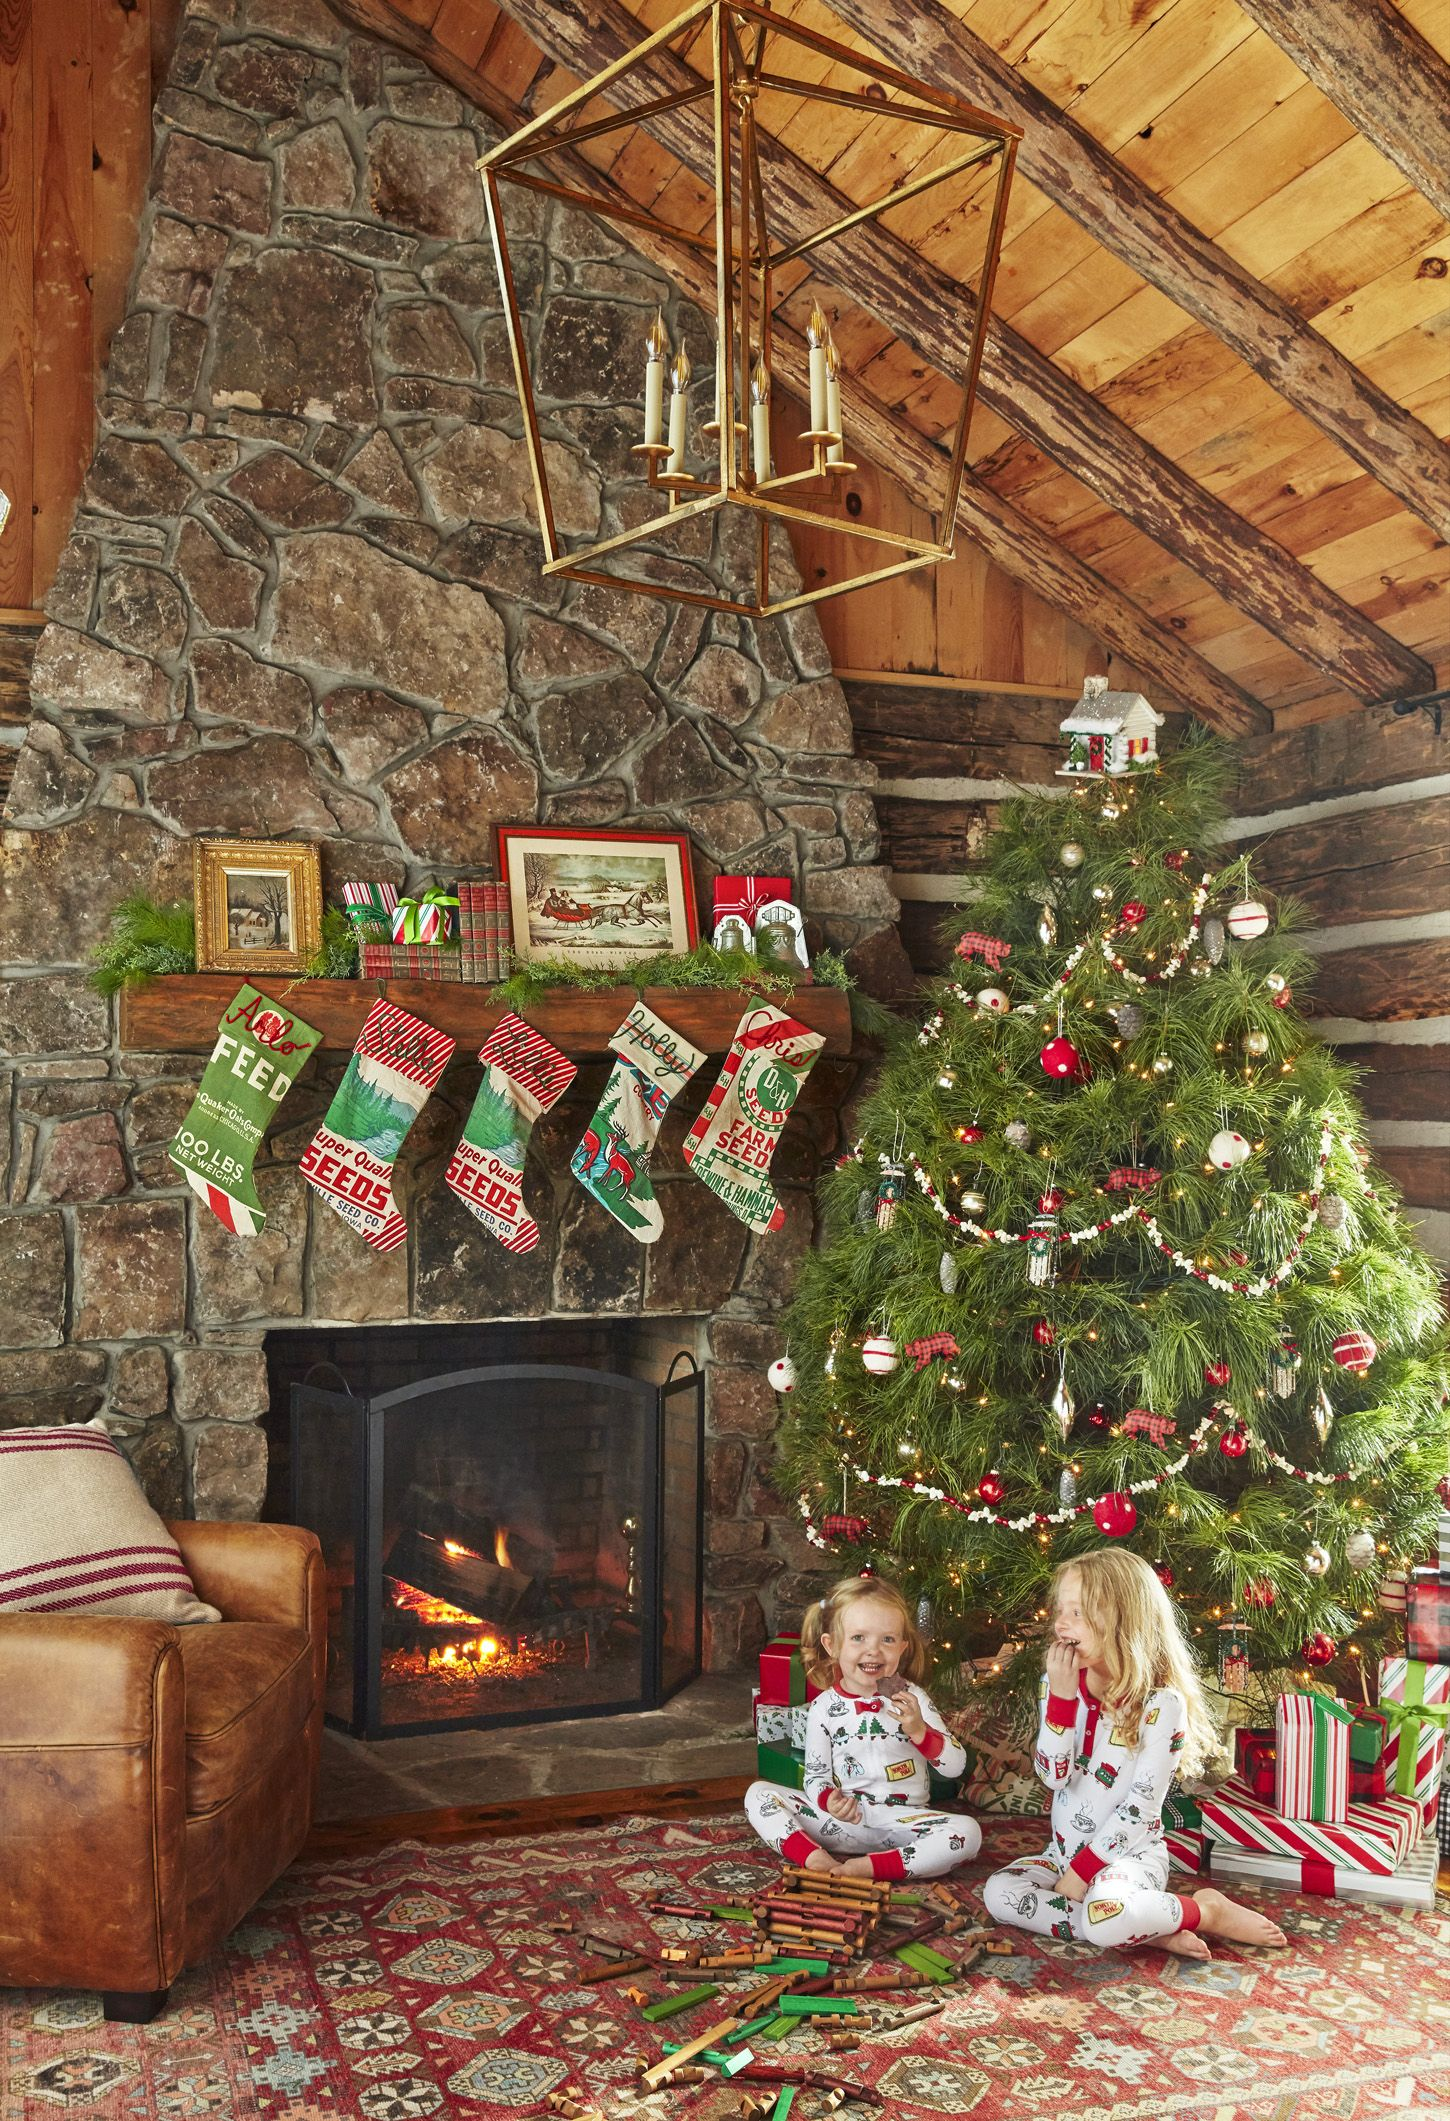 56 Christmas Mantel Decorations Ideas For Holiday